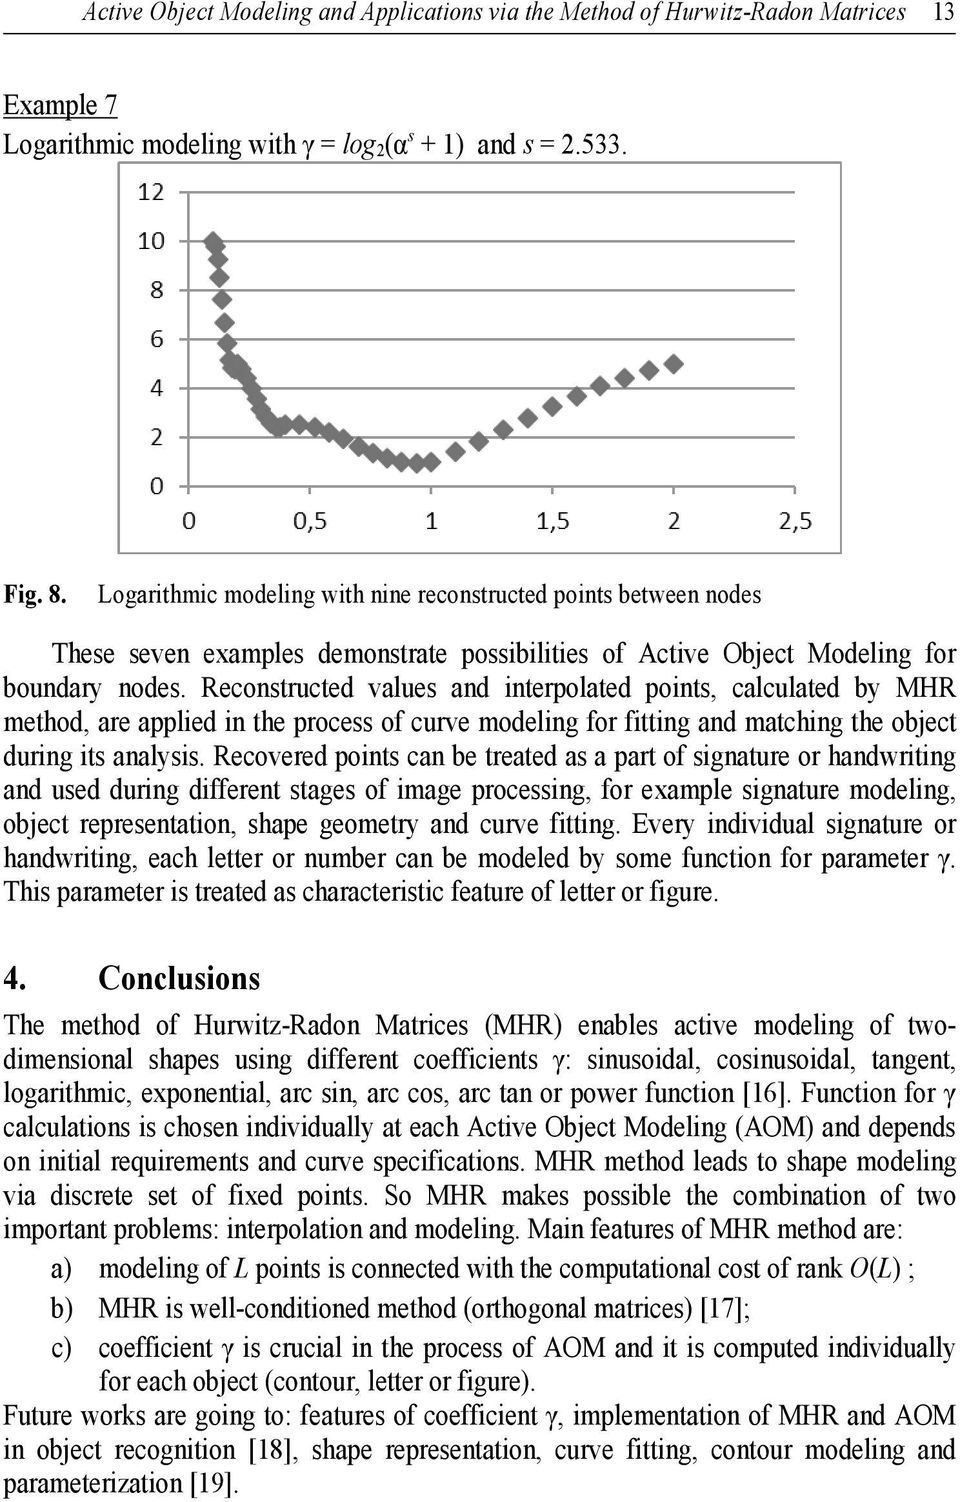 Reconstrcted vales and interpolated points, calclated b MHR method, are applied in the process of crve modeling for fitting and matching the object dring its analsis.